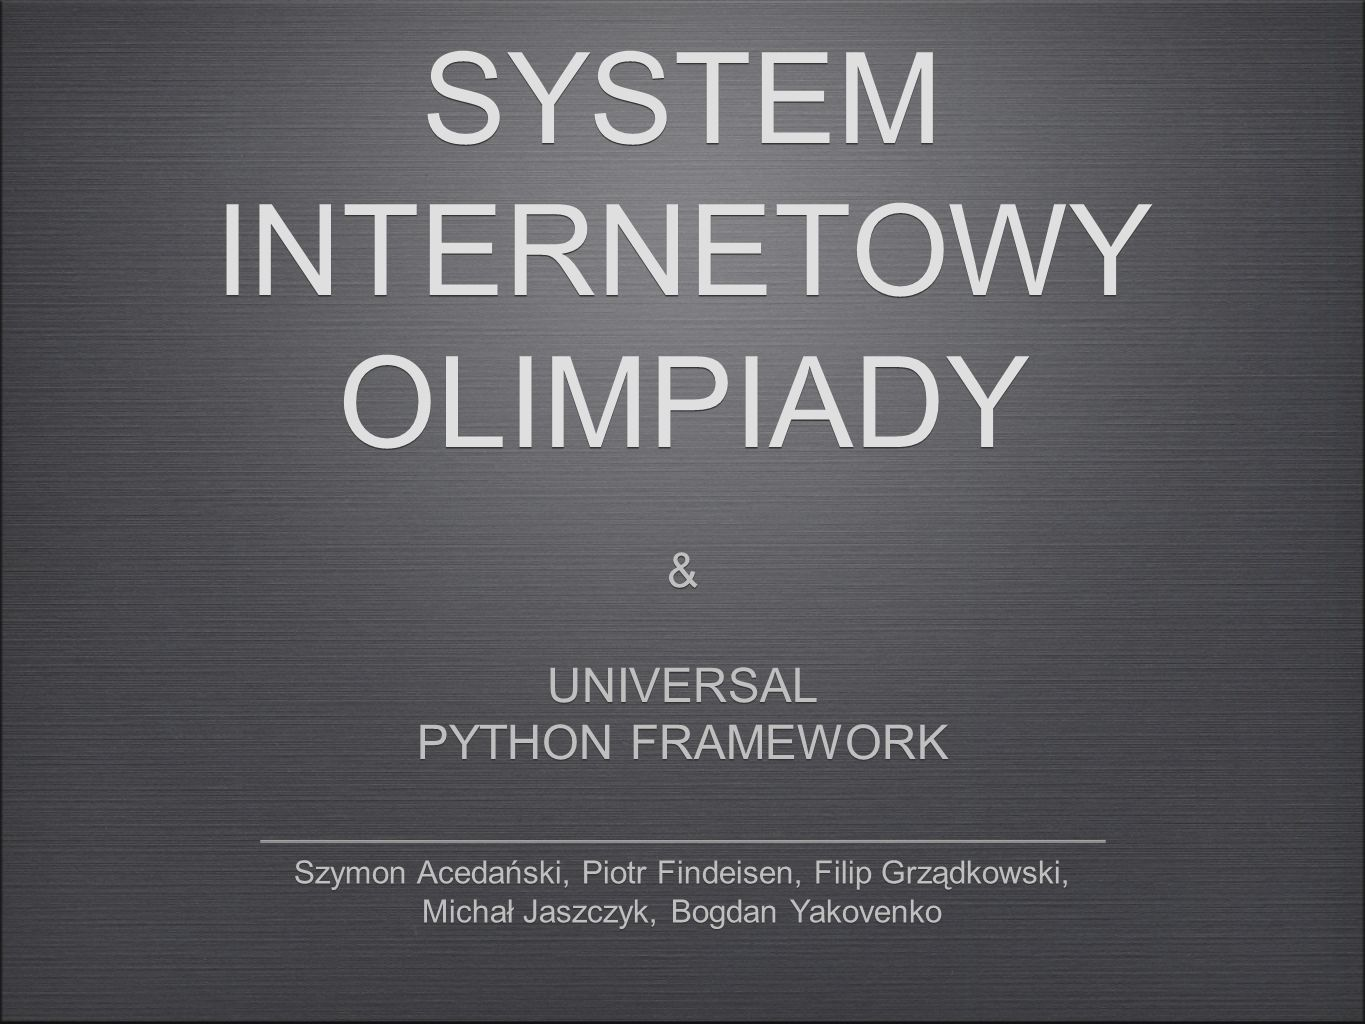 universal python framework Remote Object Access Object Query Language Object-Relational Mapper Event Manager Workers System File Storage System